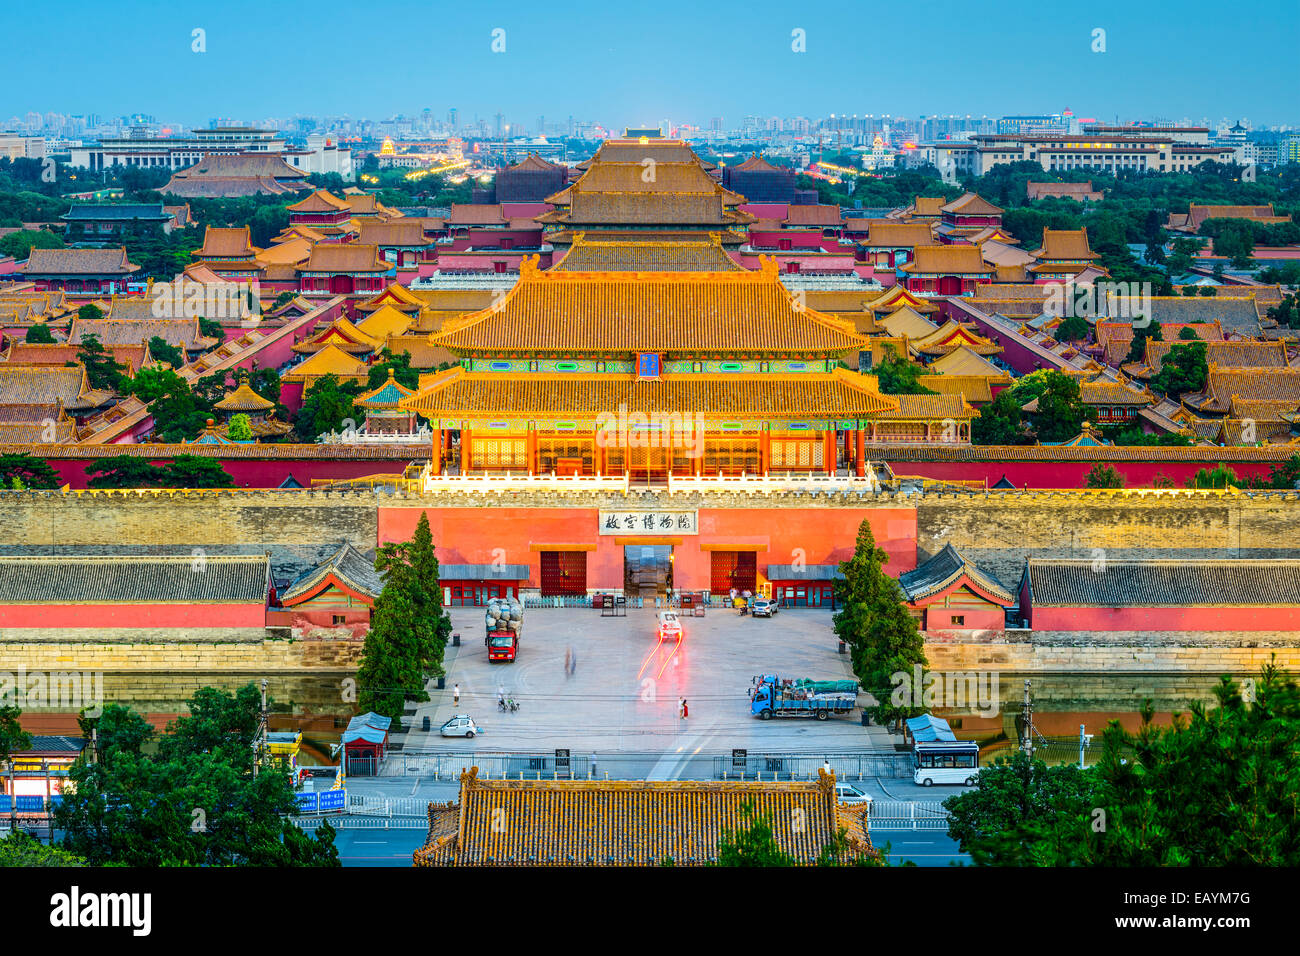 Beijing, China at the Imperial Palace and Forbidden City. - Stock Image